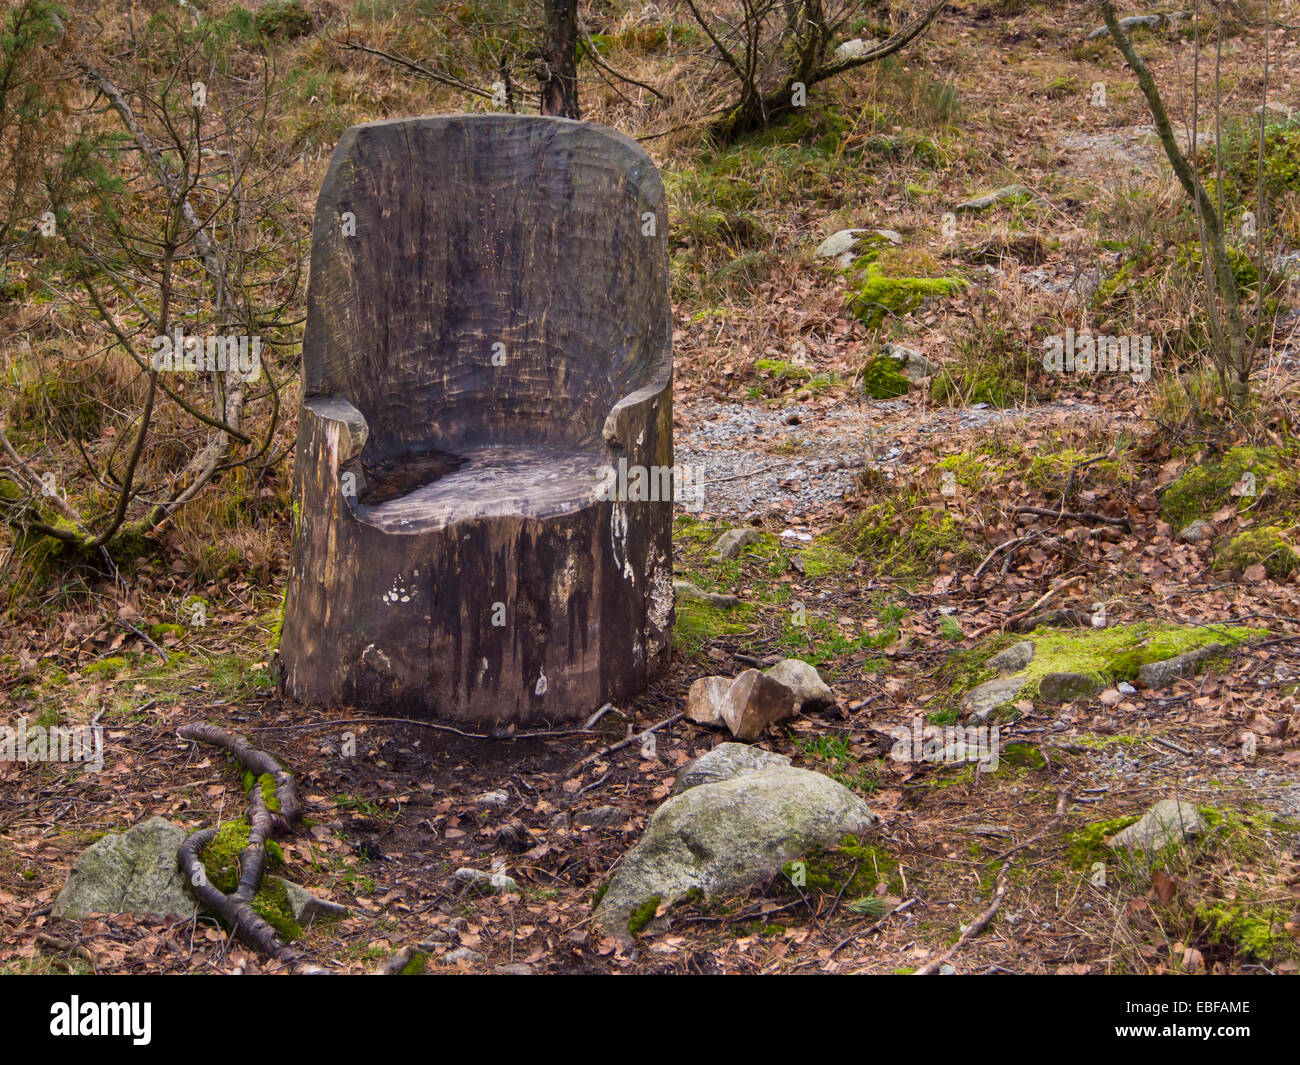 Tree Stump Chair Firmly Rooted To The Ground And Ready For Weary Hikers In  The Forests